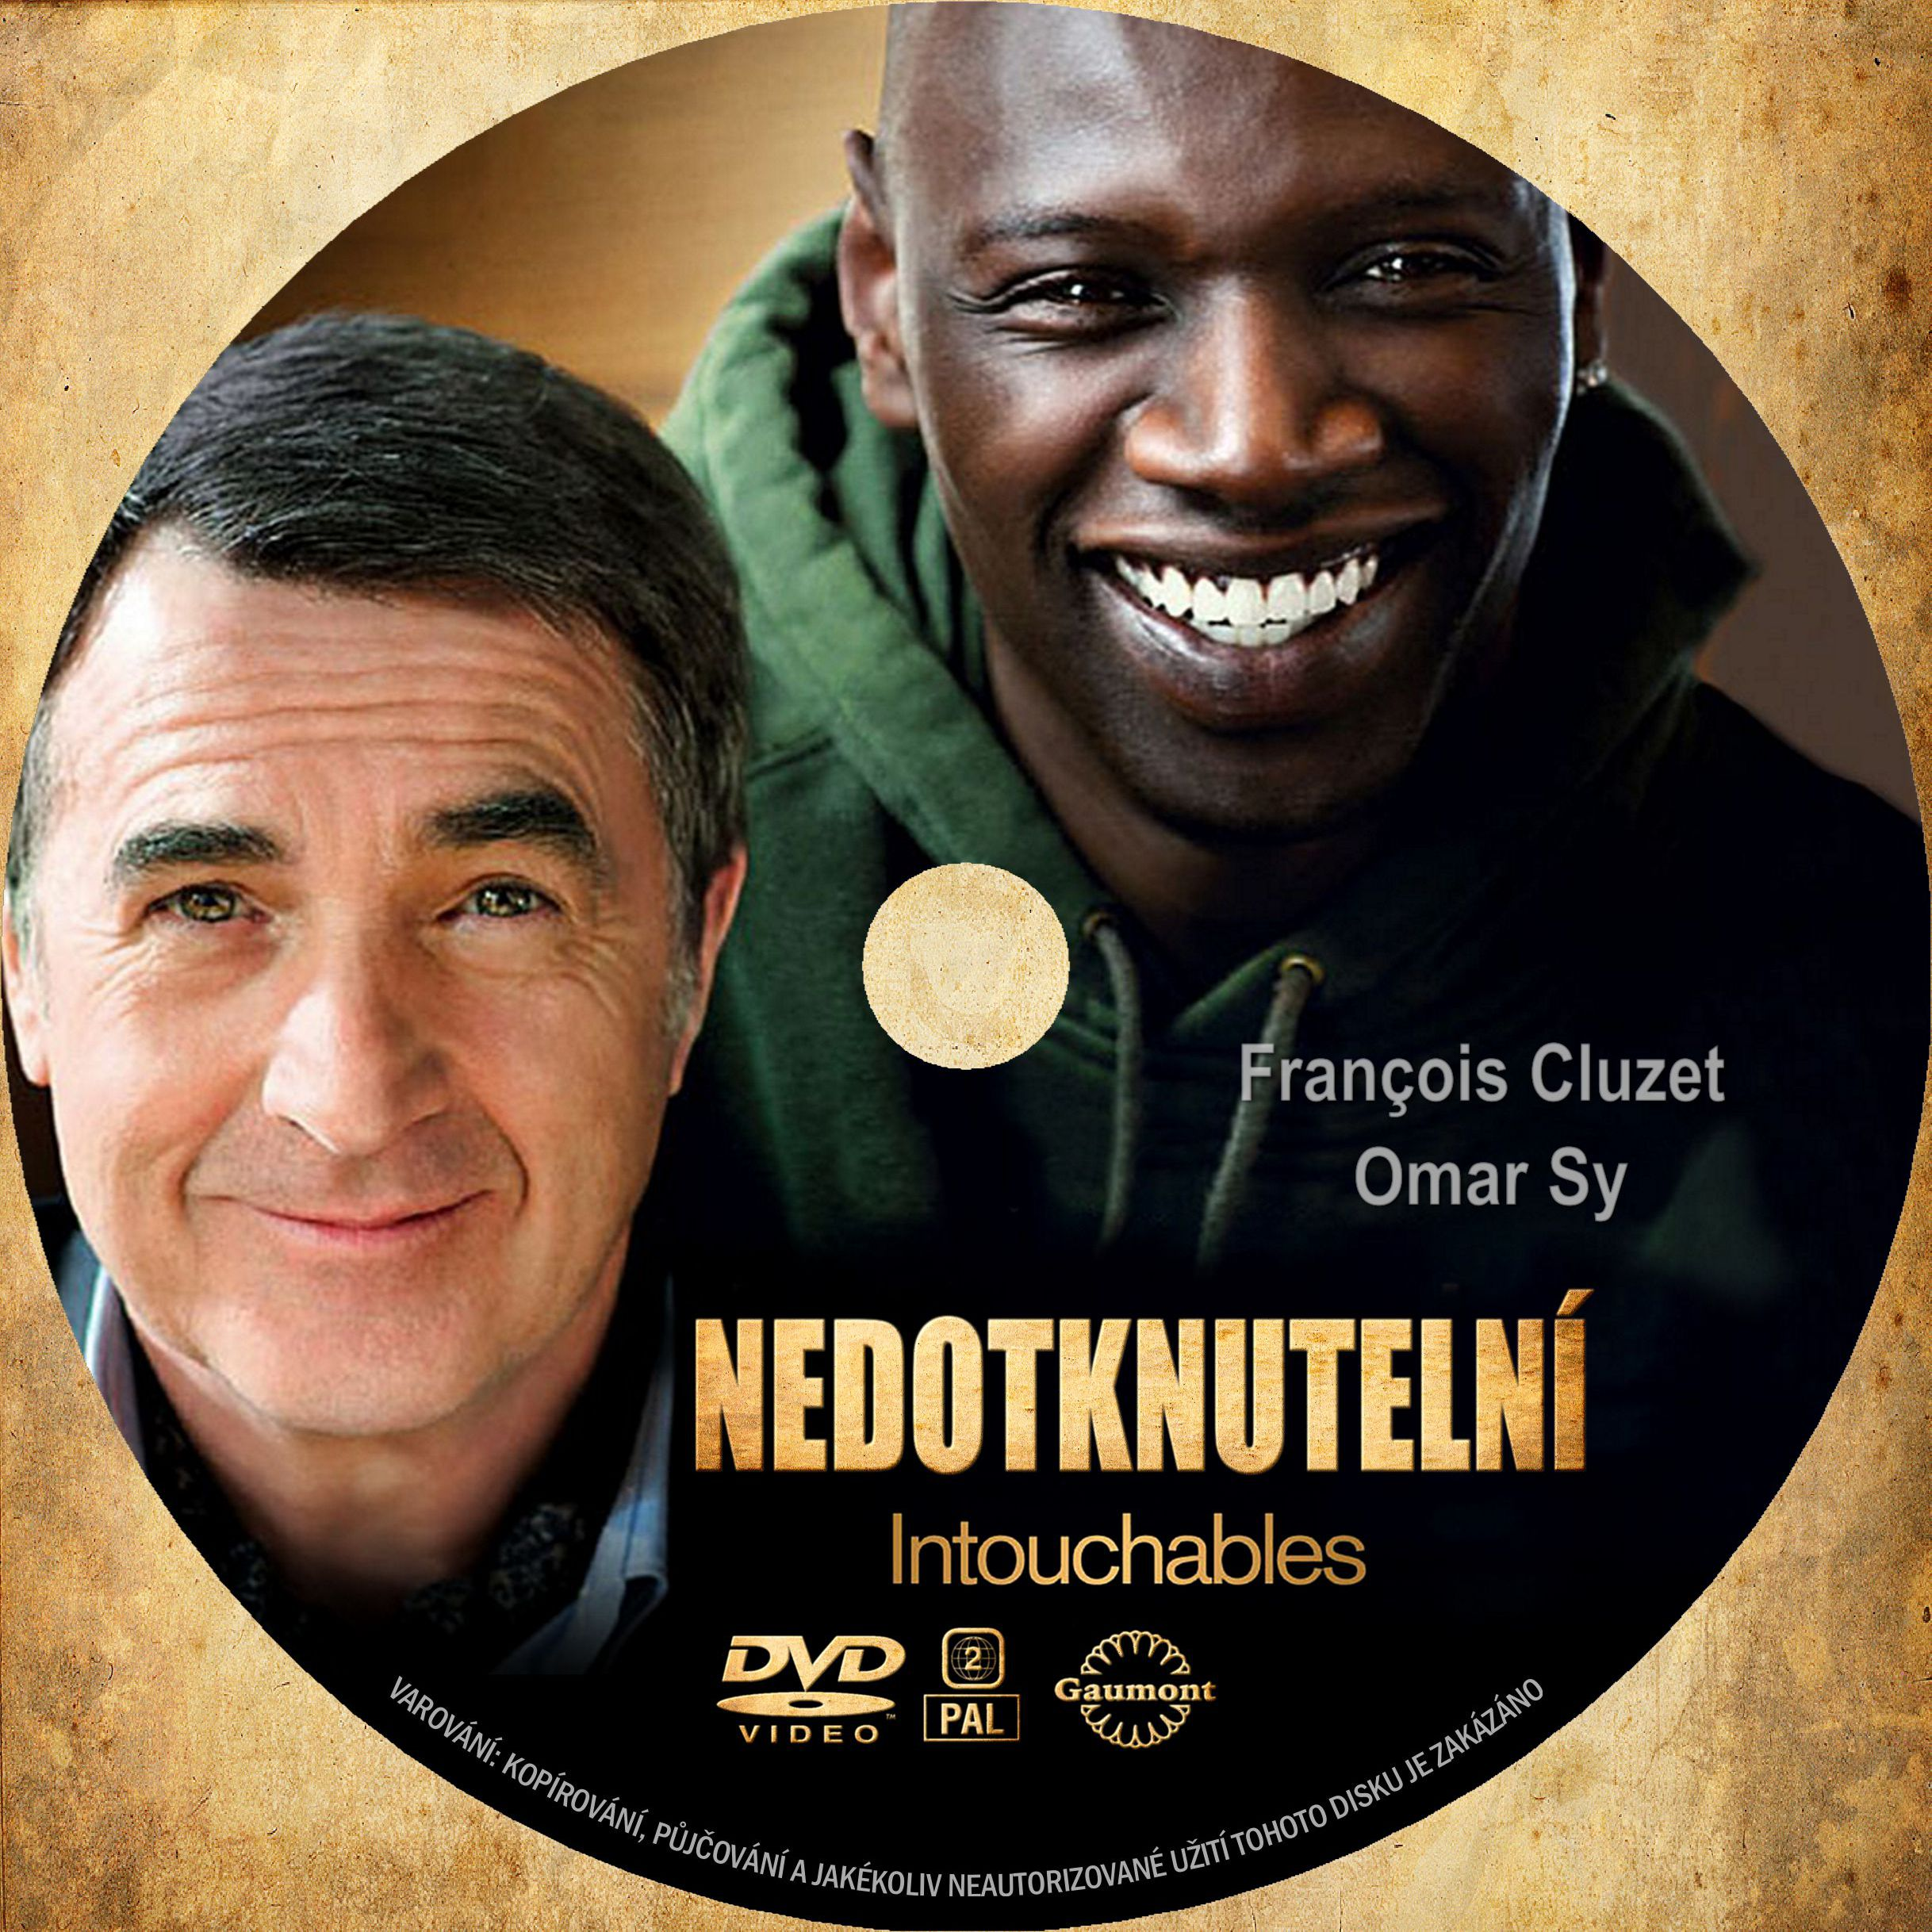 the intouchables (2011) movie download